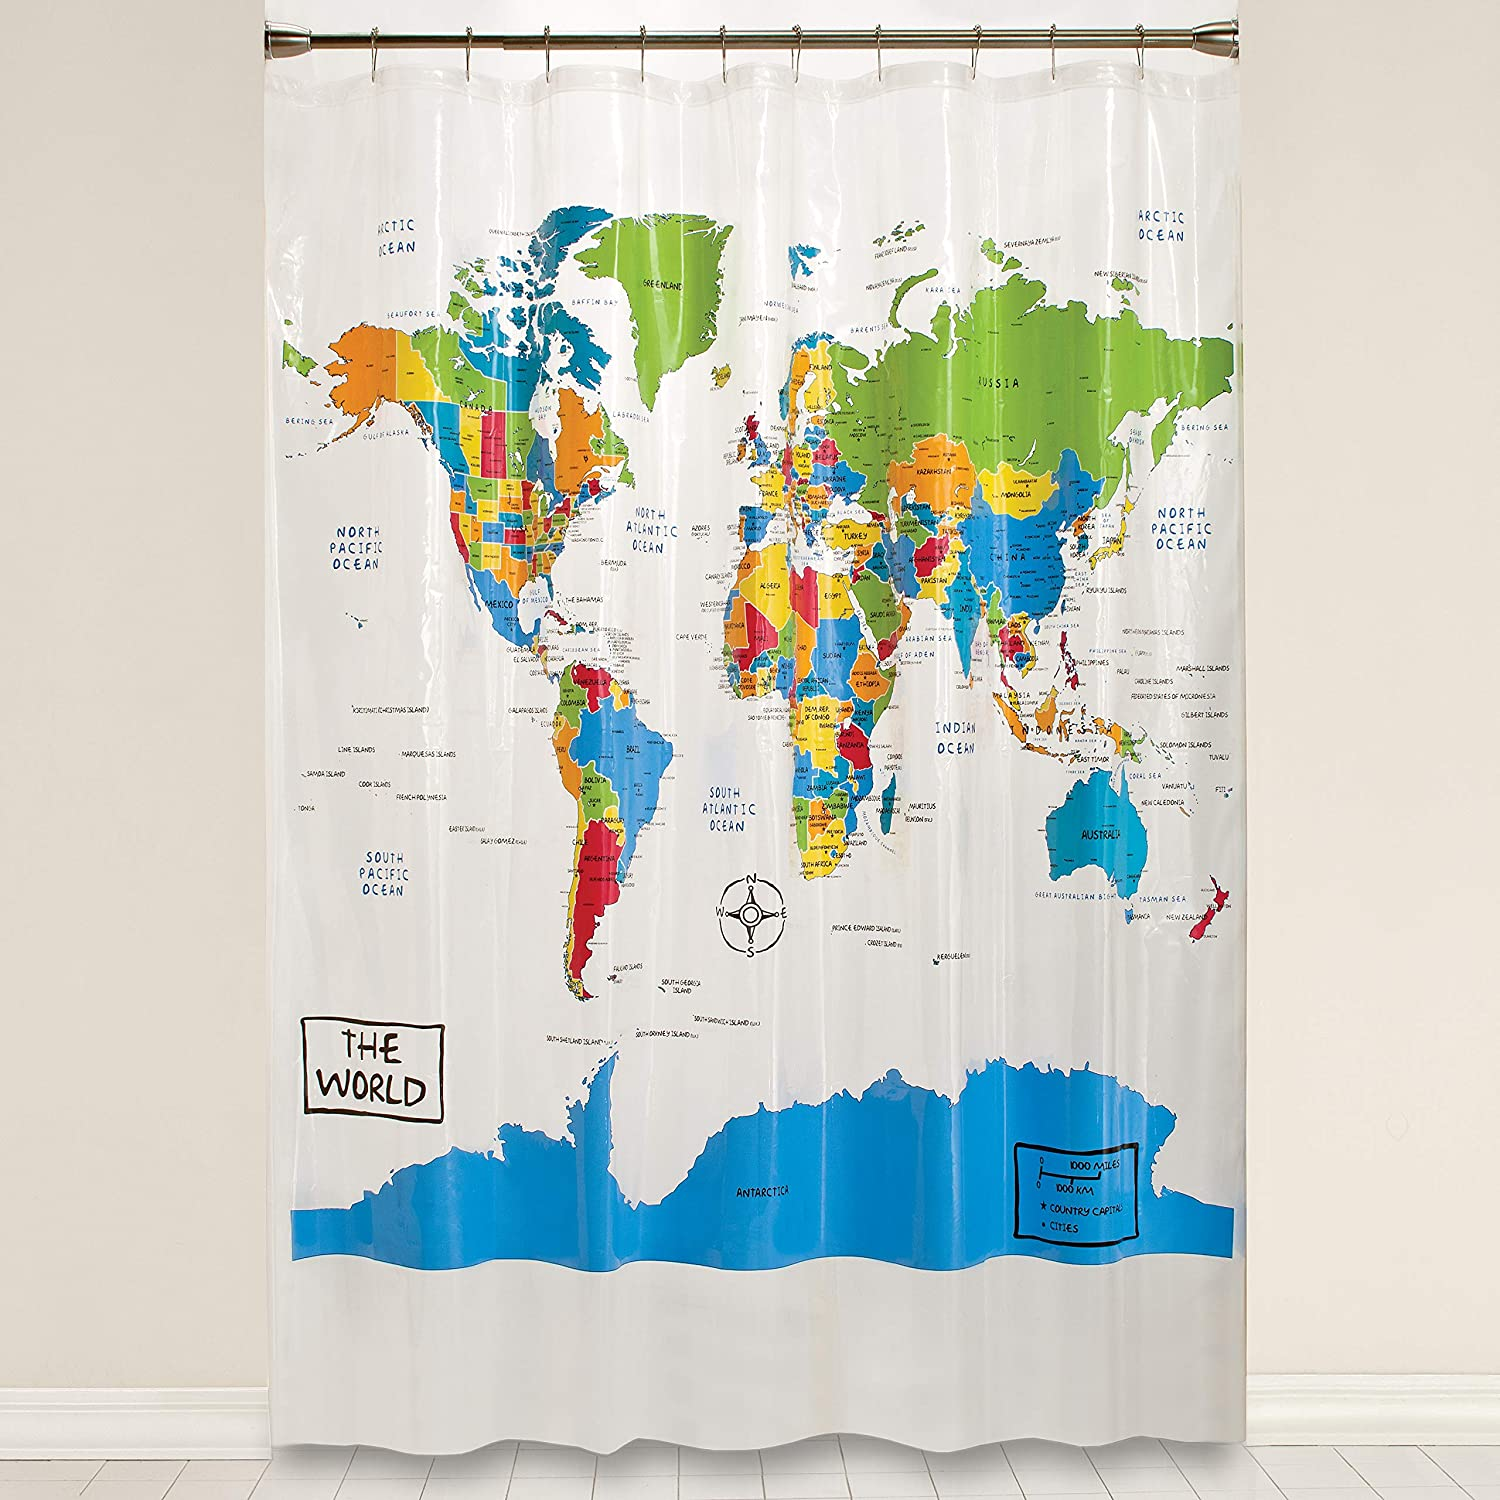 Multicolored 70 inches x 72 inches World Map Shower Curtain SKL Home by Saturday Knight Ltd